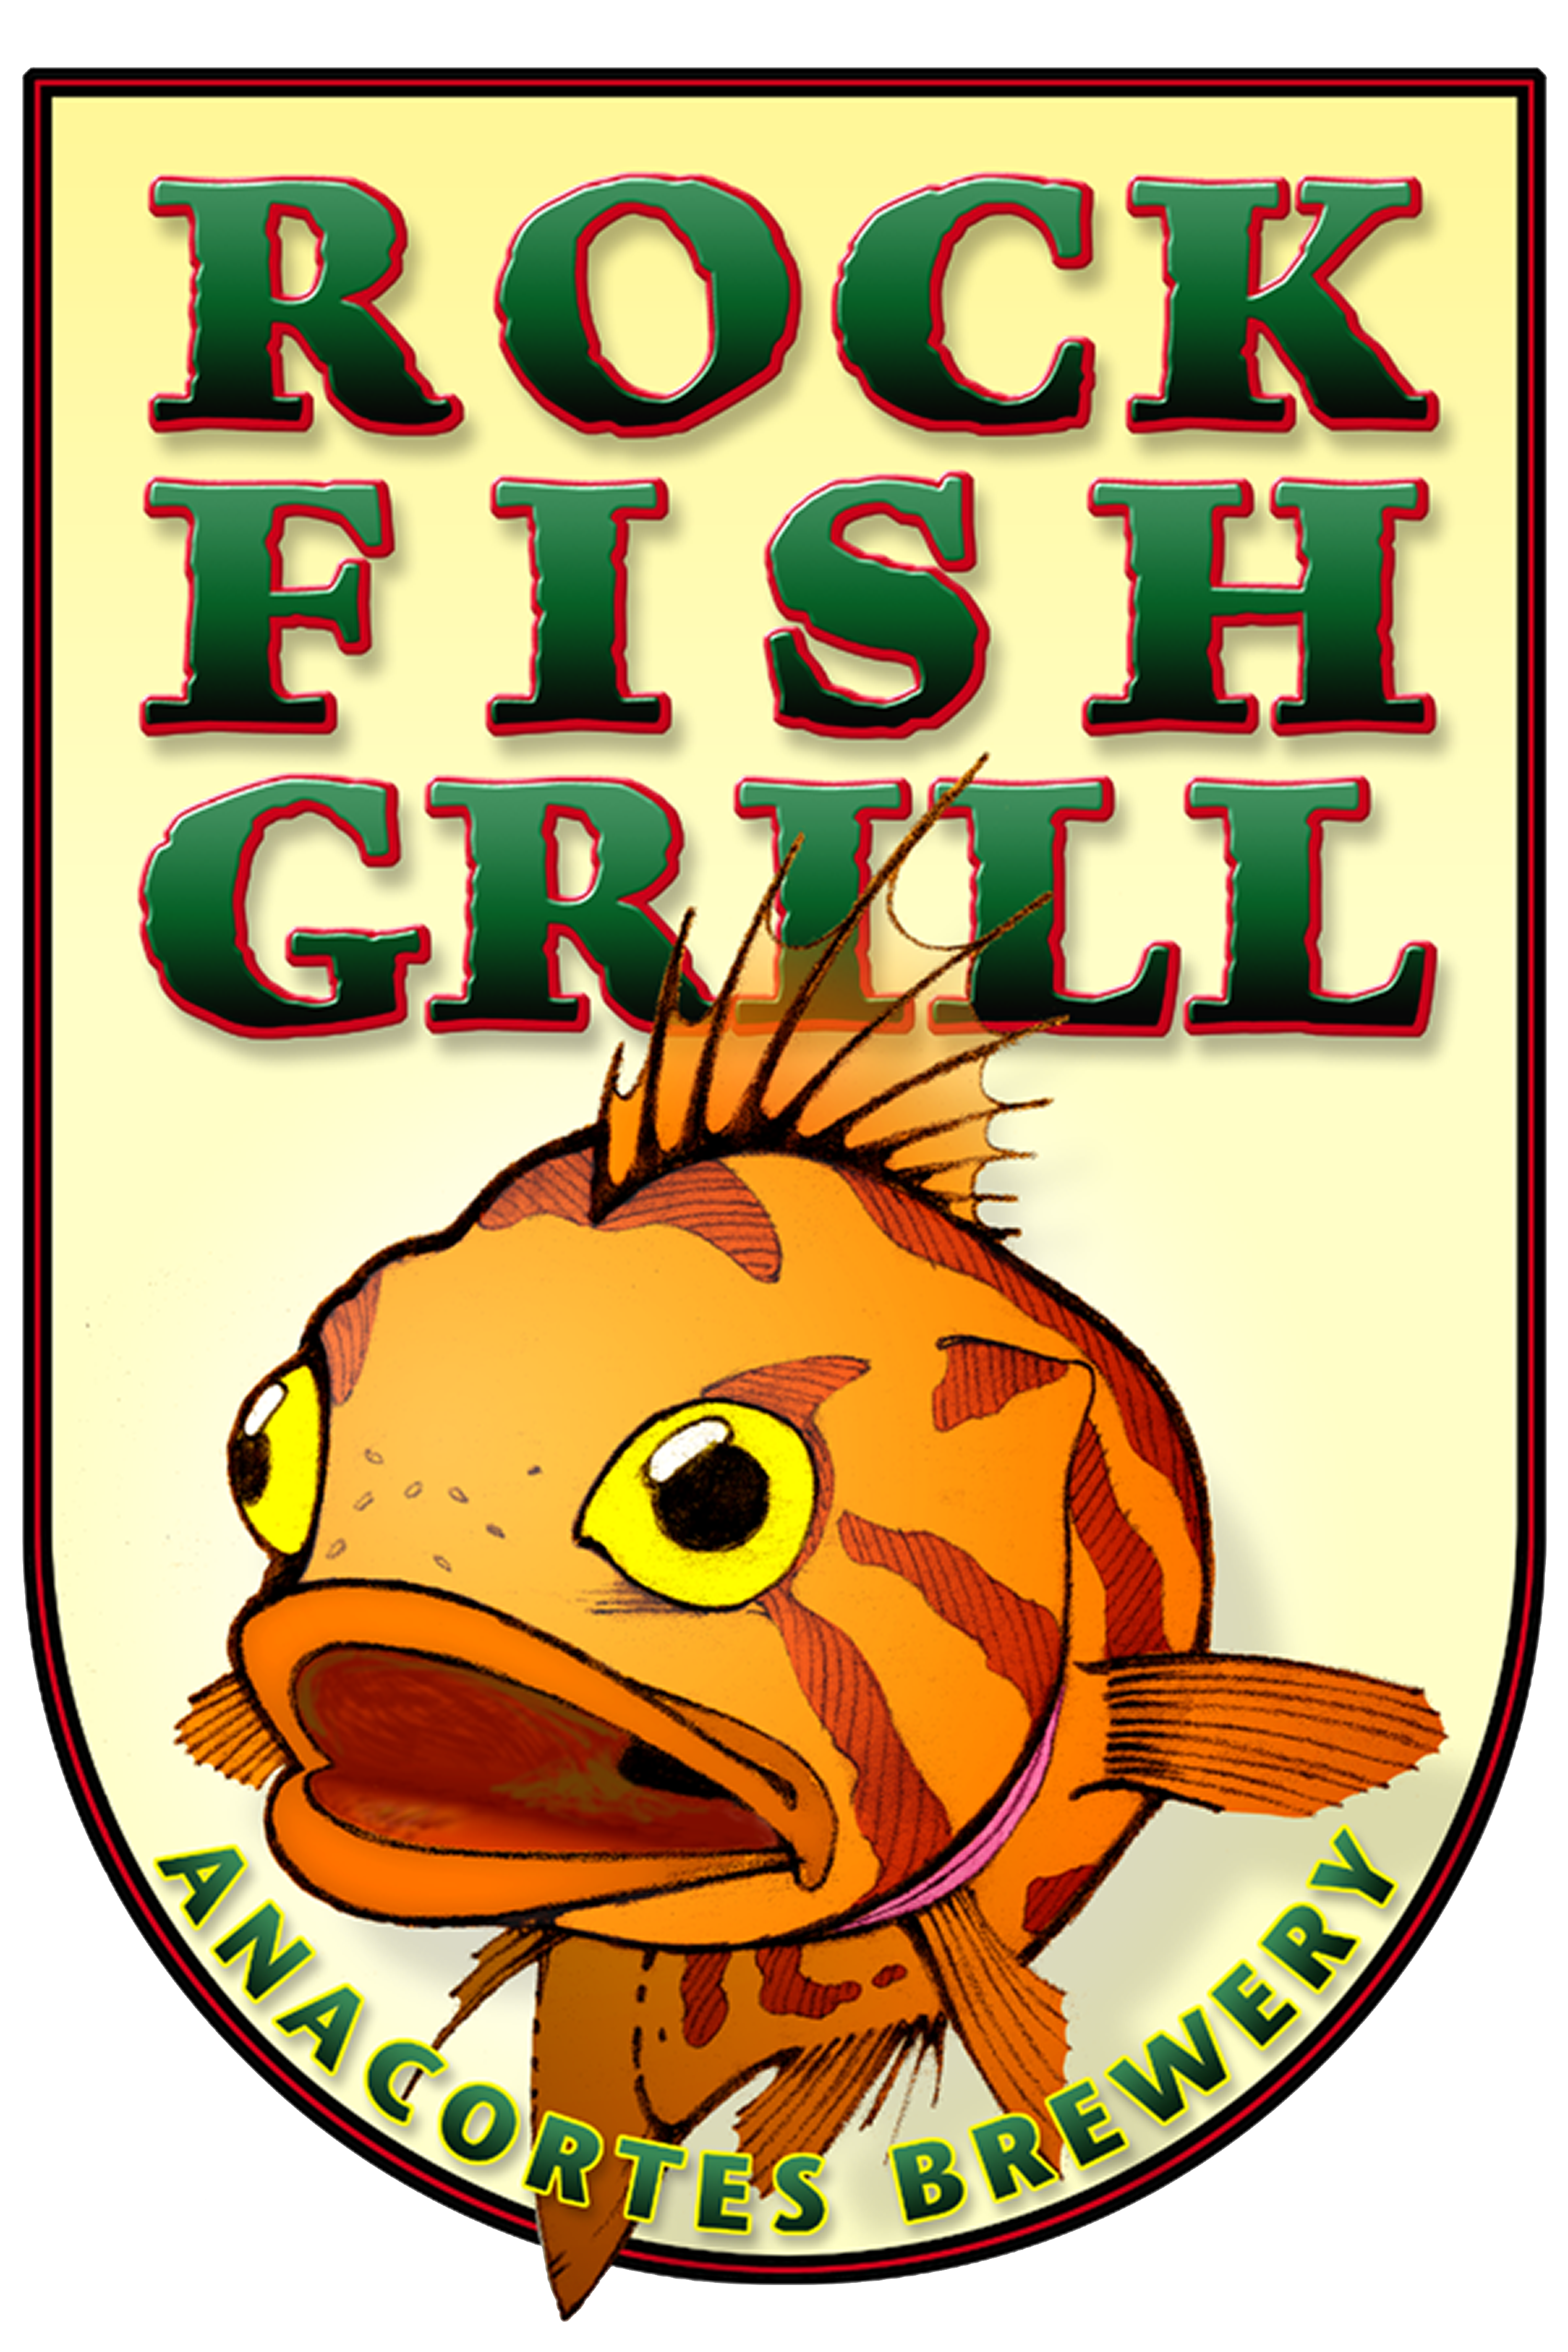 Anacortes Brewery - The Rockfish Grill